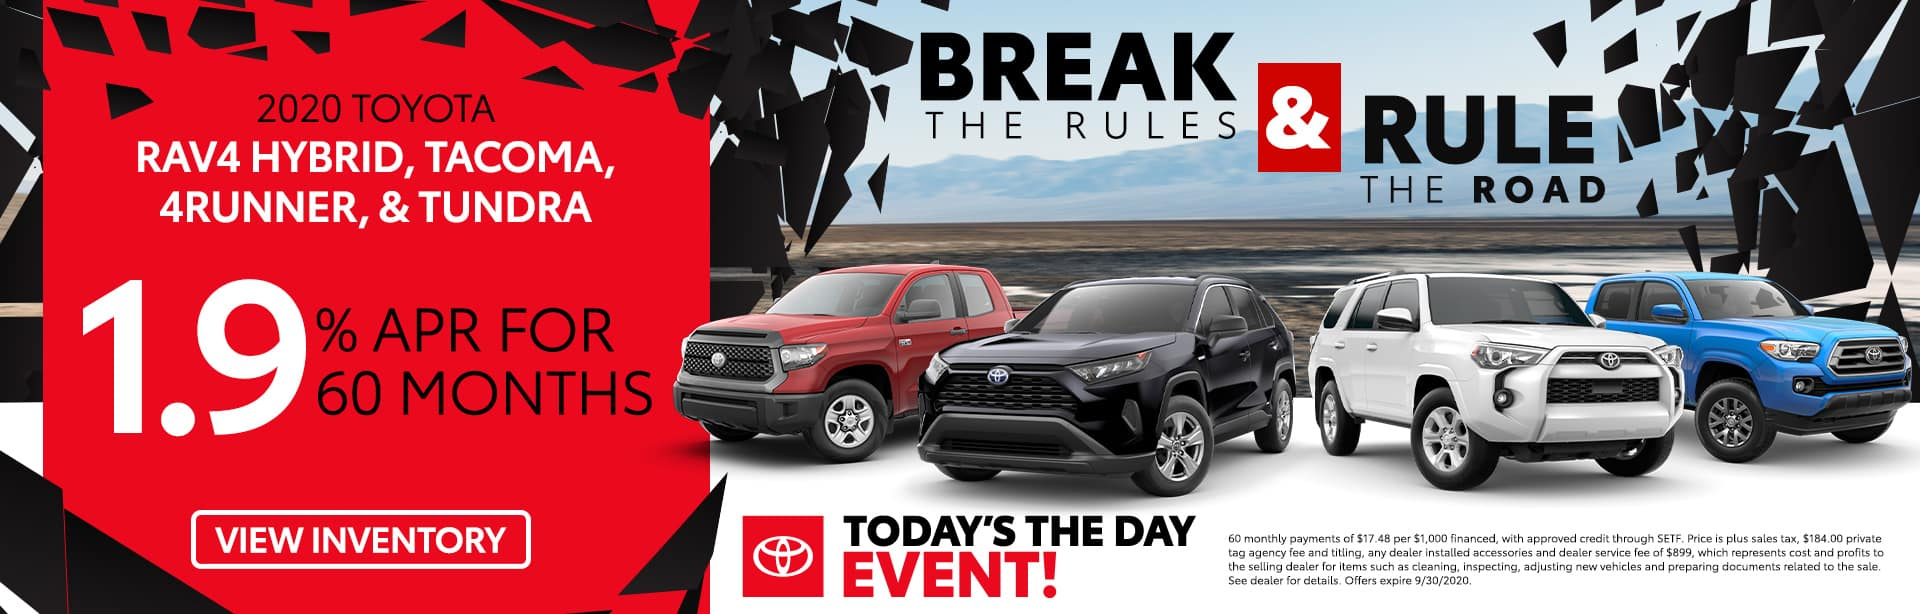 2020 Toyota RAV4 Hybrid, Tacoma, 4Runner & Tundra | 1.9% APR For 60 Months | Today's The Day Event! | Break The Rules & Rule The Road